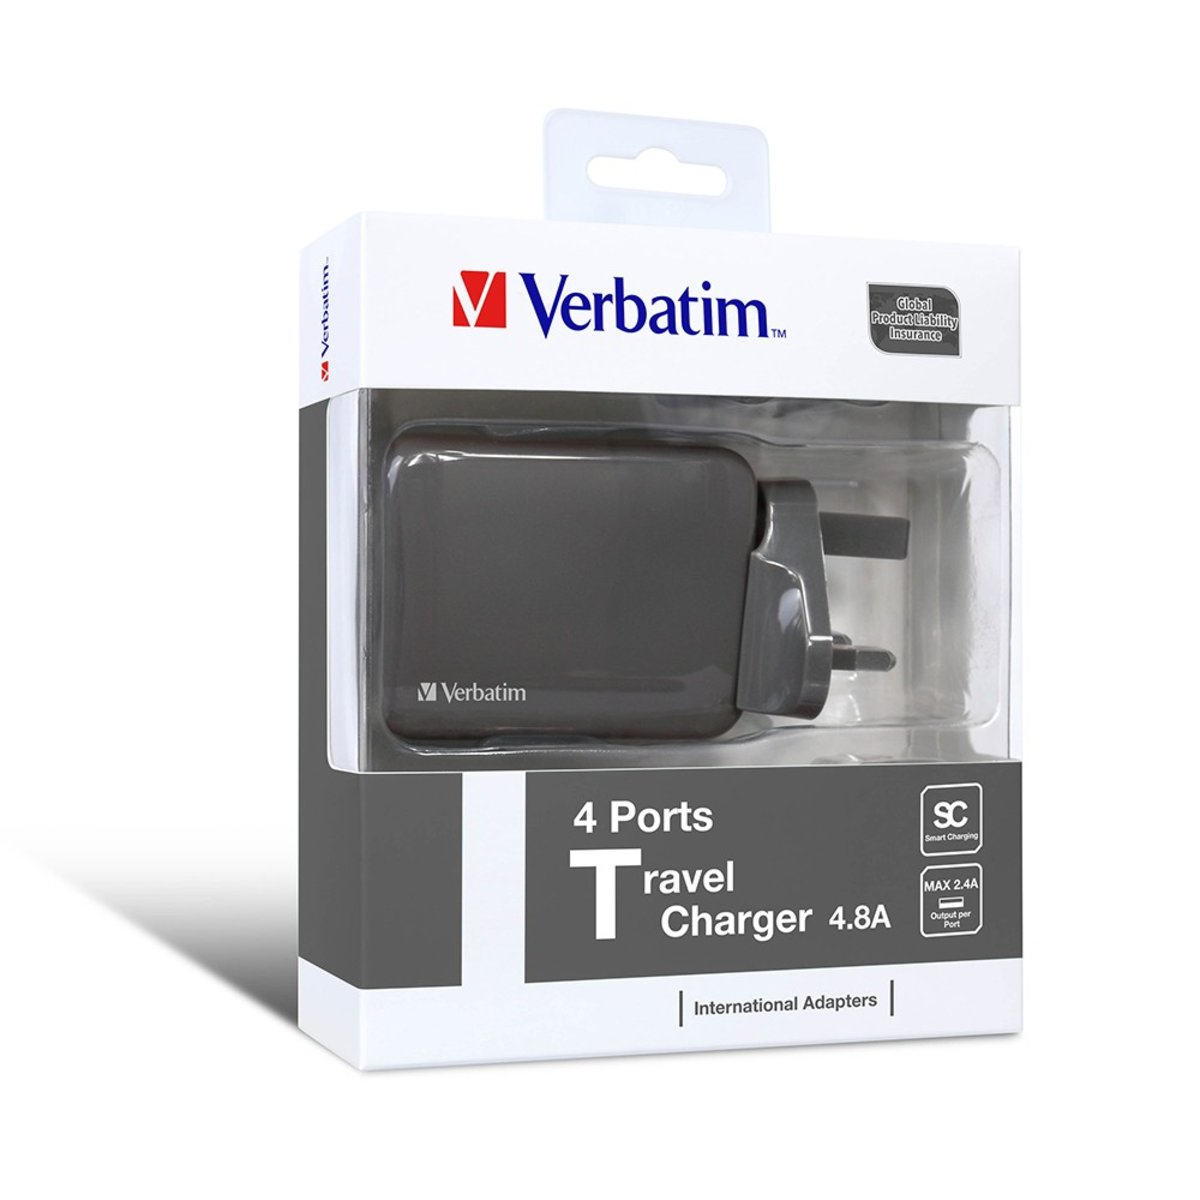 4 Ports Travel Charger【Authorized Goods】